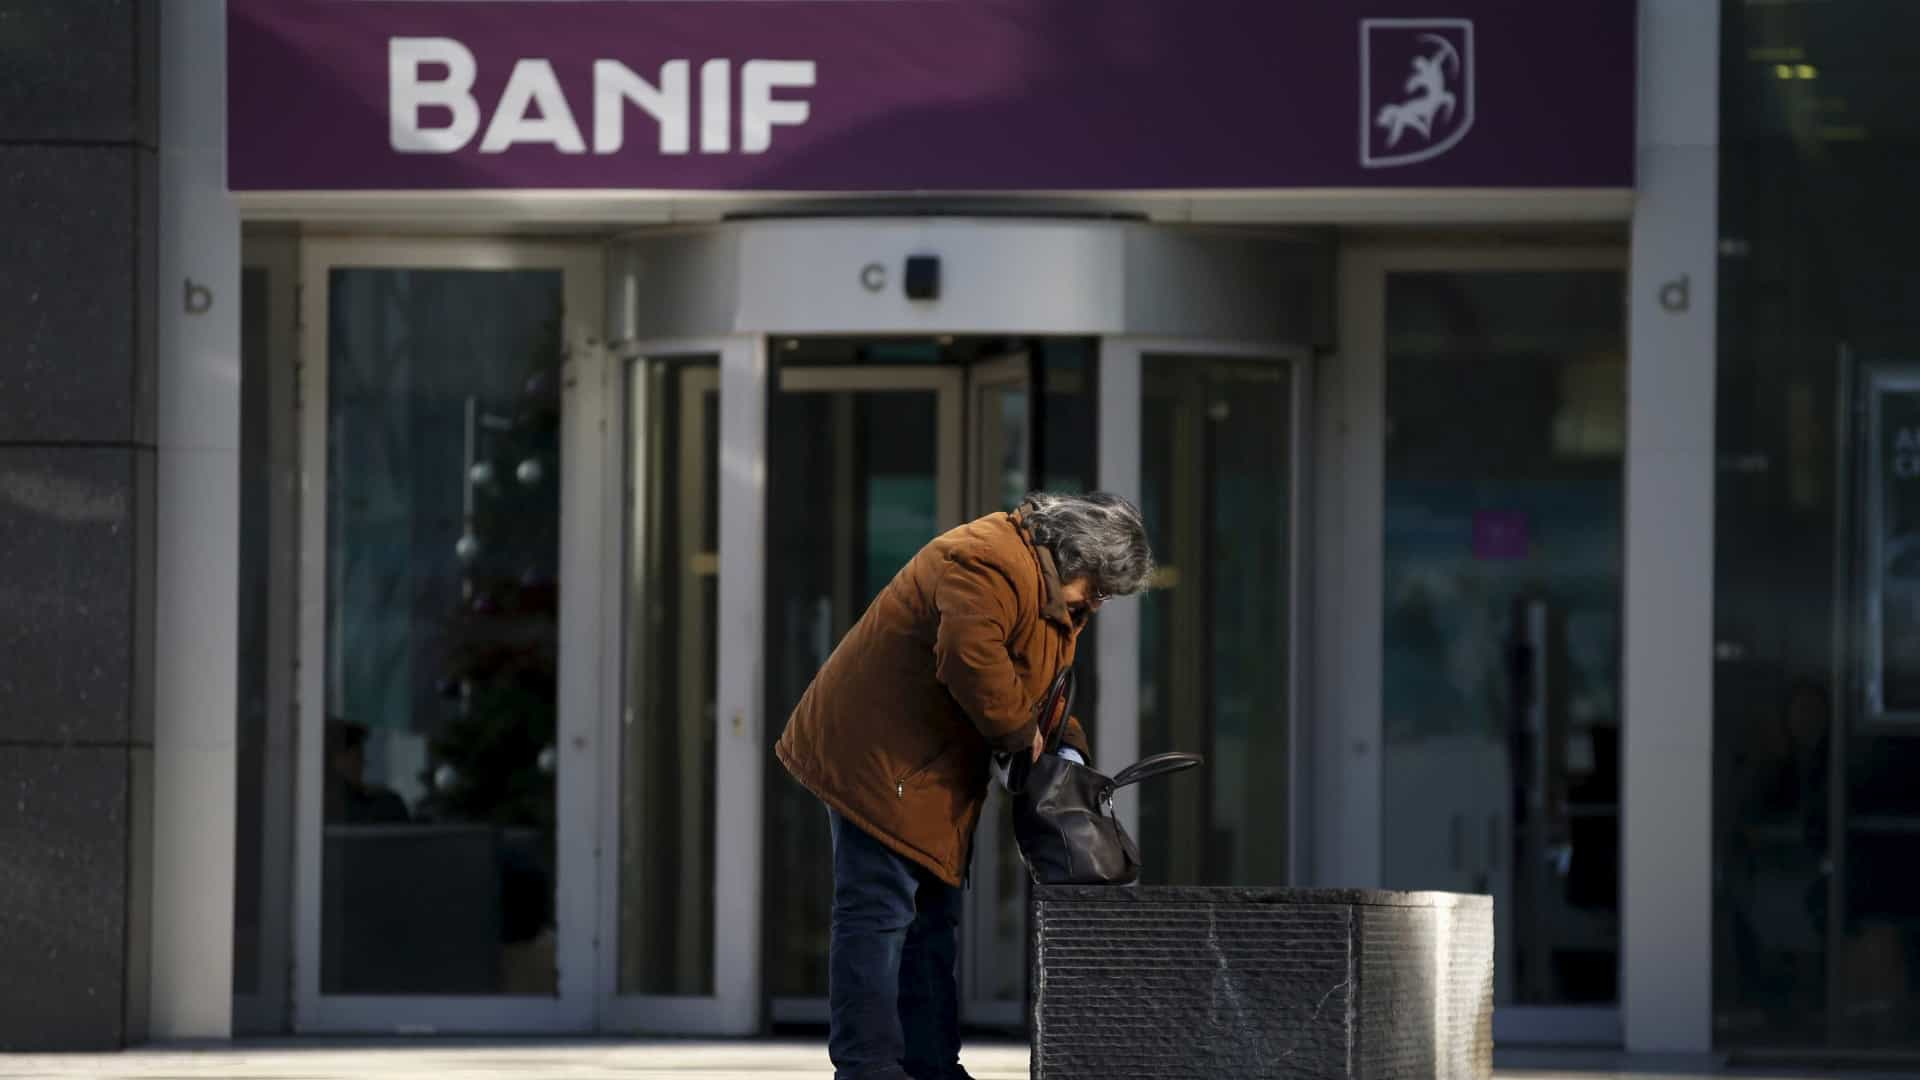 Banco de Portugal requereu a liquidação judicial do Banif